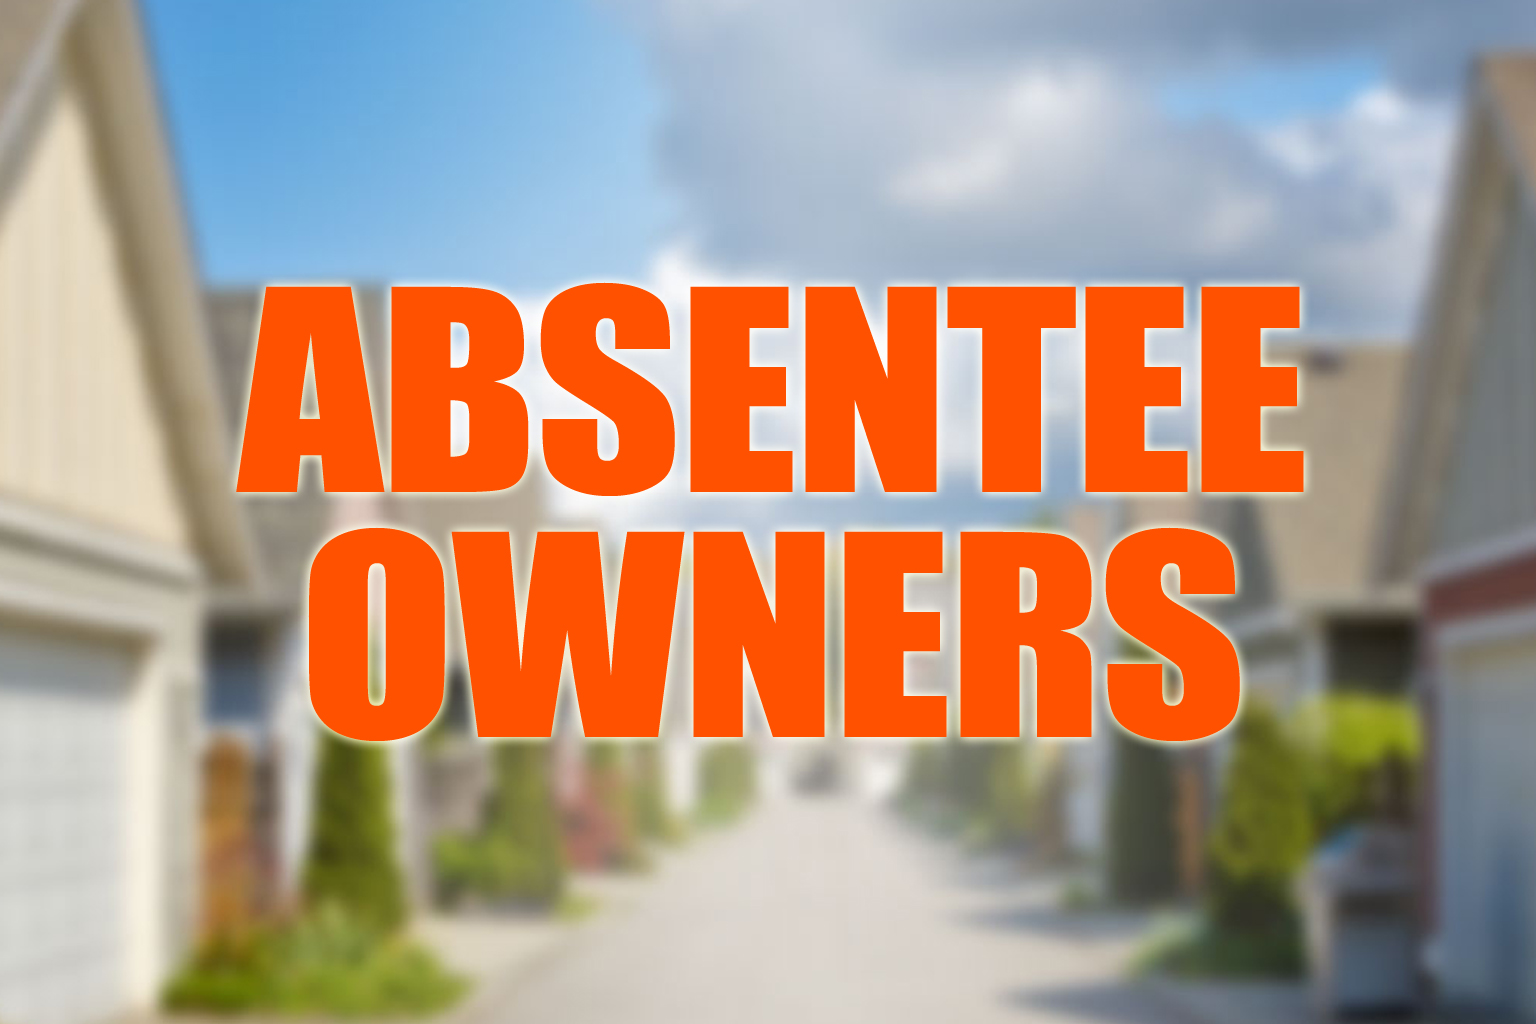 Absentee Owner - Tired of being a landlord? Are you ready to sell? Are the Tenants just way to much of a hassle? We are one call away!